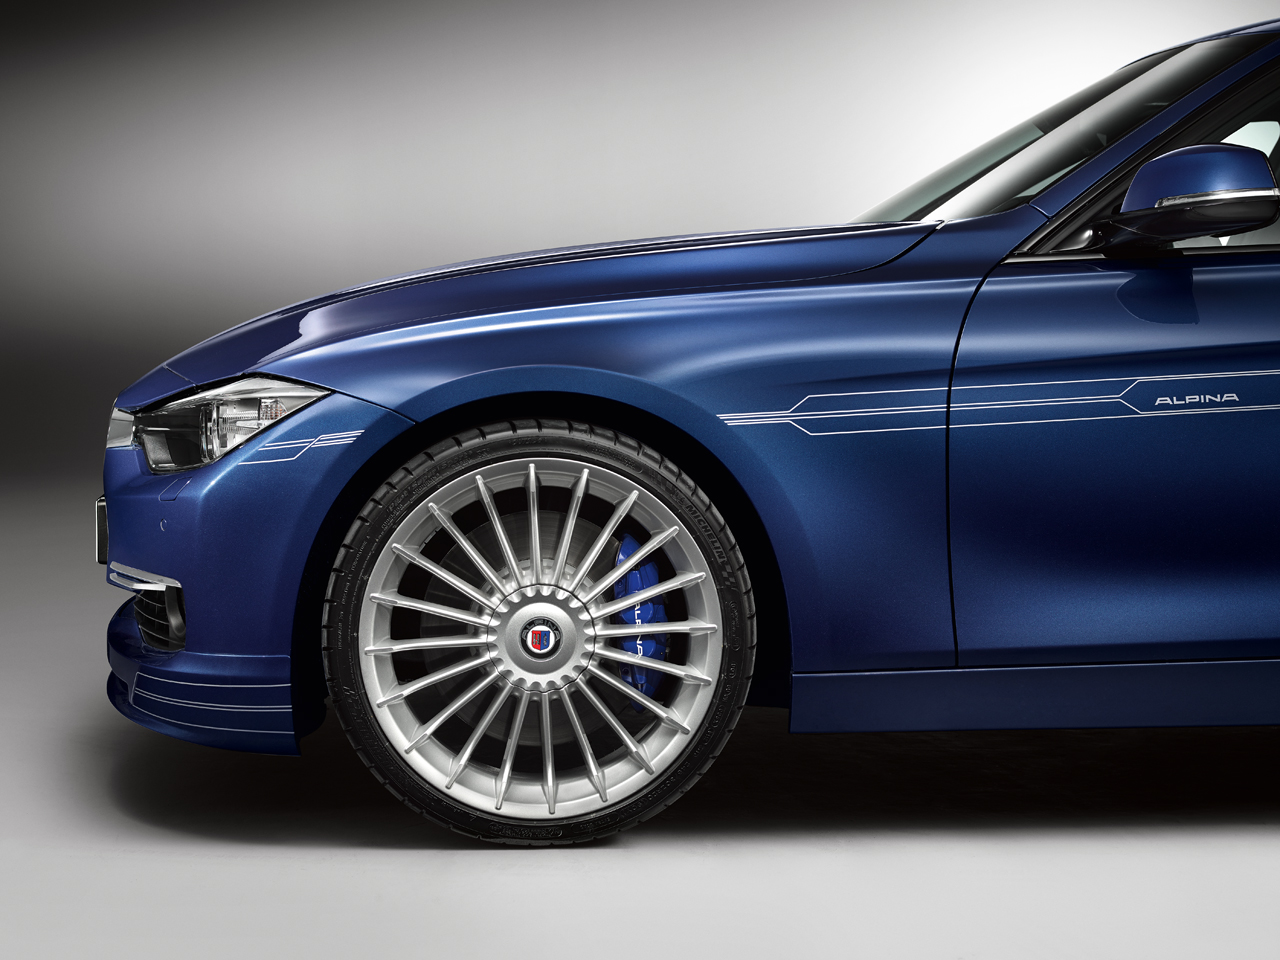 Bmw Announces The Introduction Of New Engines For Entire Range Starting July furthermore I Fs moreover Bmw R Nine T furthermore Alpina Reveals Full Info On B Biturbo Photo Gallery further Bmw Series E. on bmw 3 cylinder engine